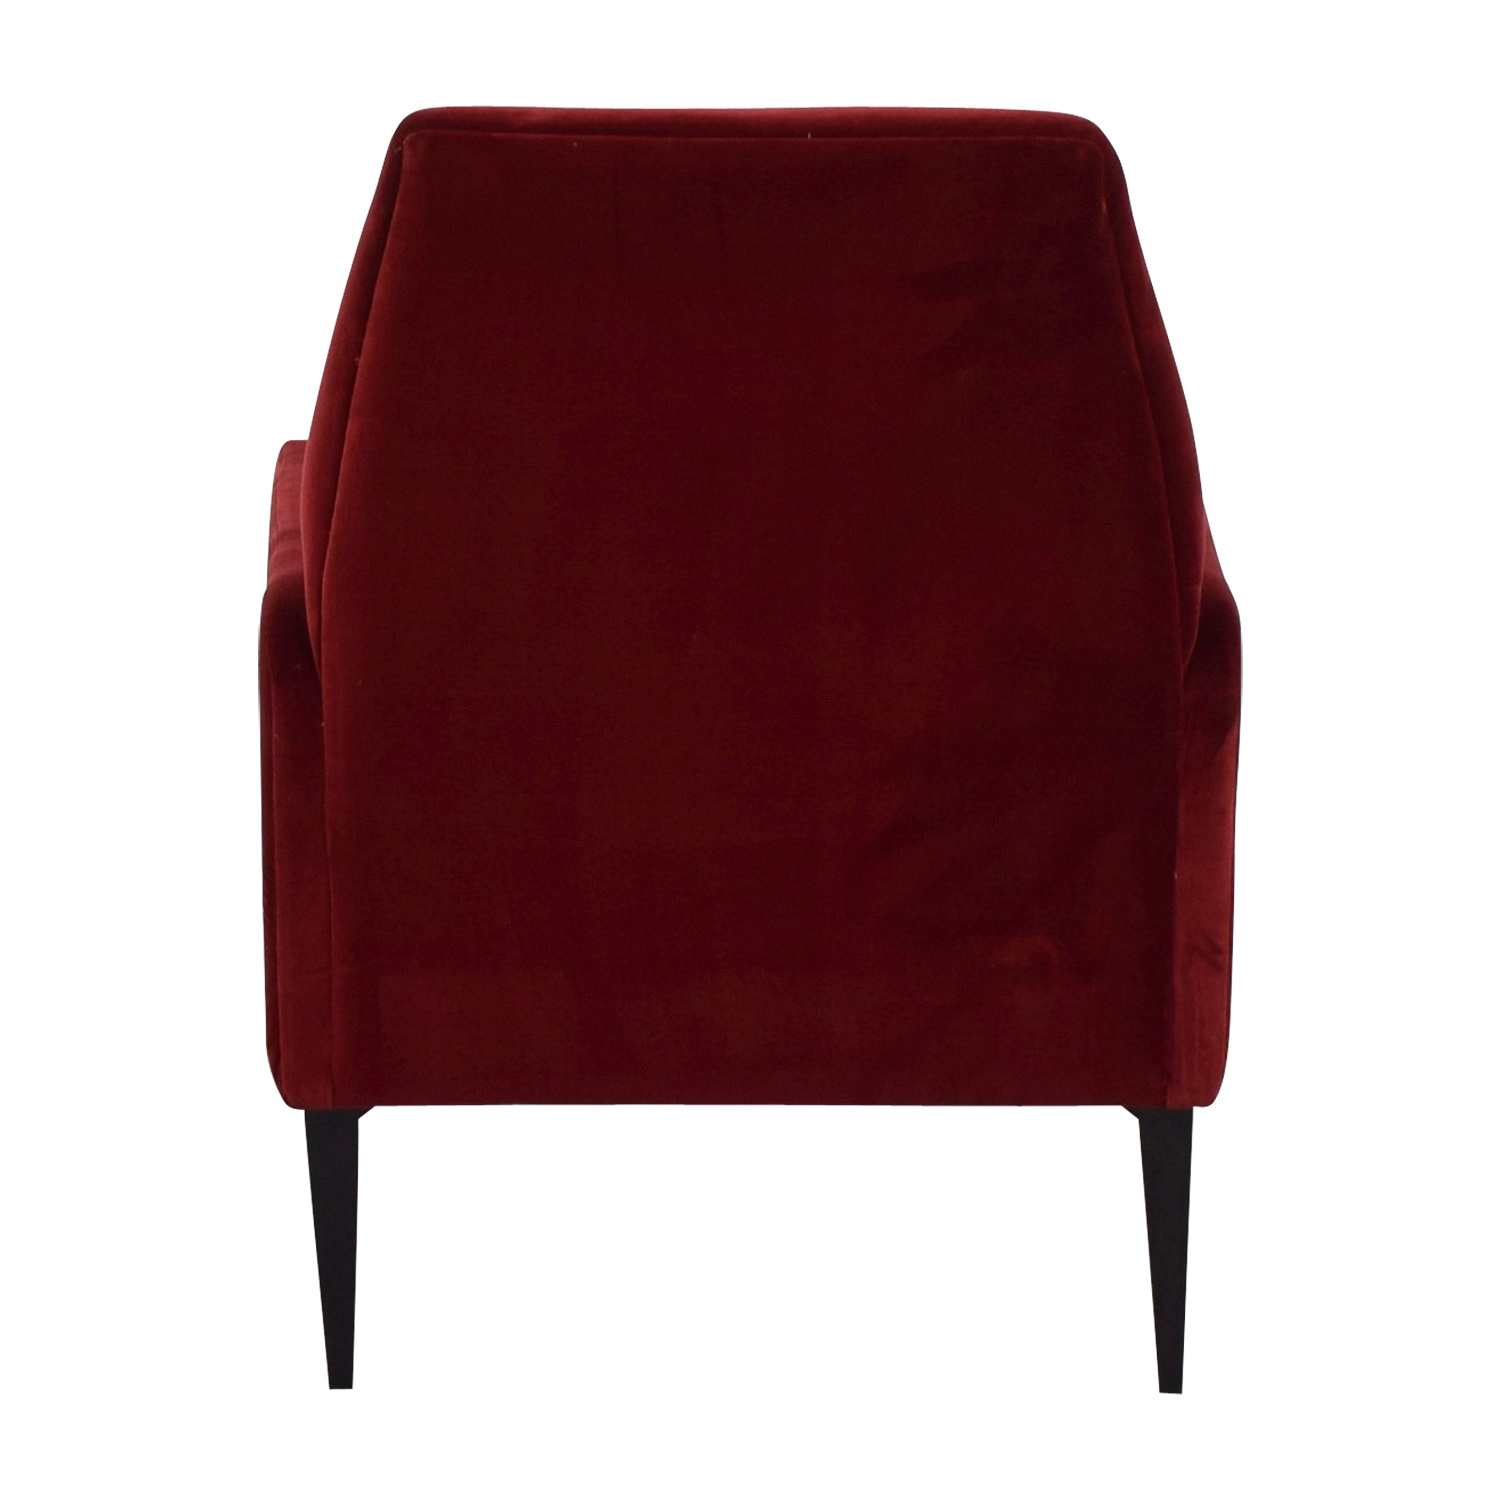 West Elm West Elm Red Velvet Accent Chair for sale